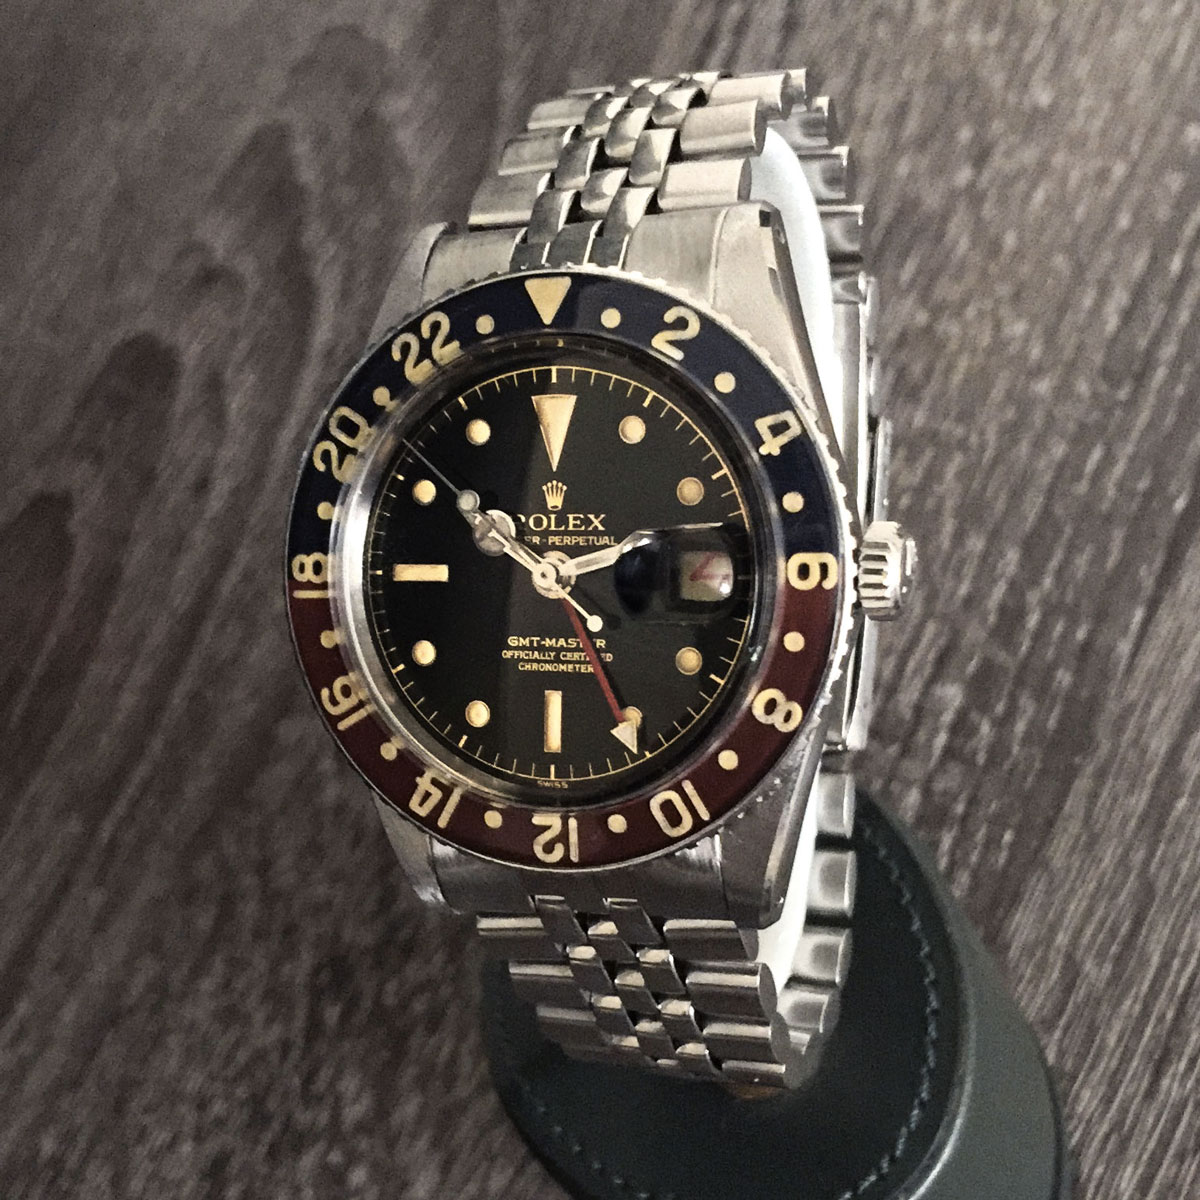 Rolex Vintage Gmt Master 6542 No Crown Guard Upper Watches